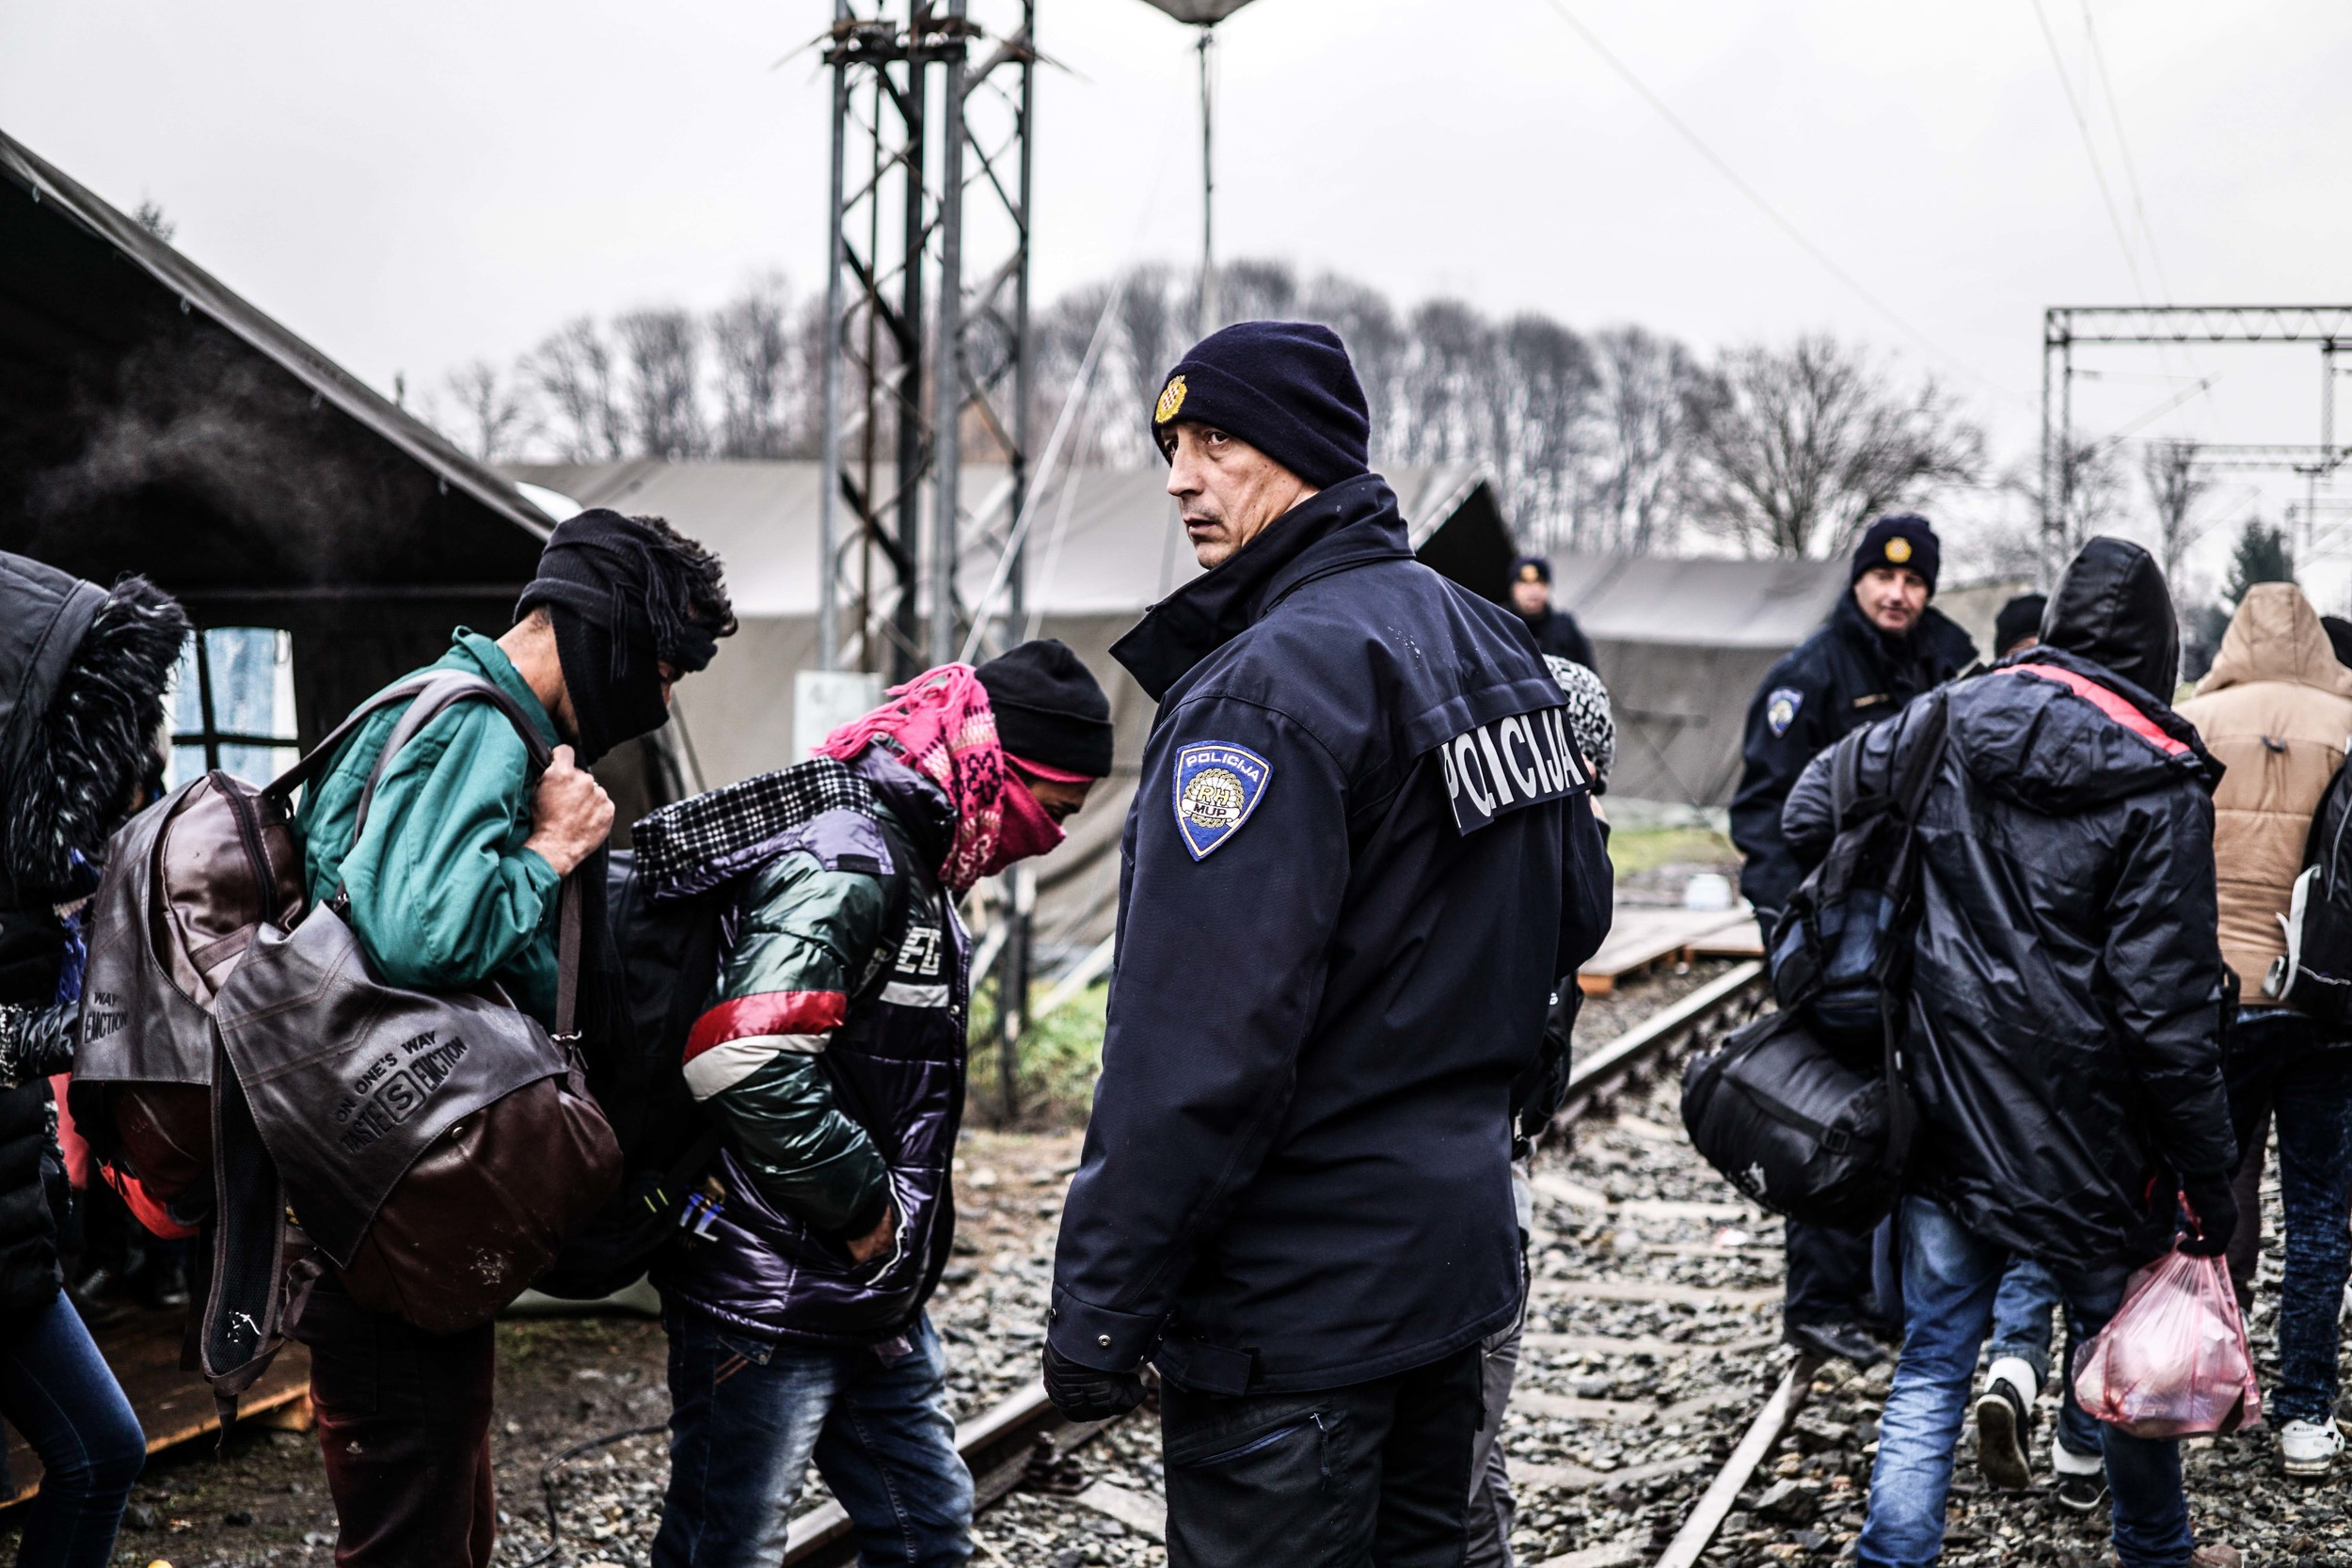 Syrian Refugee Crisis Croatia Slavonski Brod Winter Refugee Camp November 2015 7.jpg